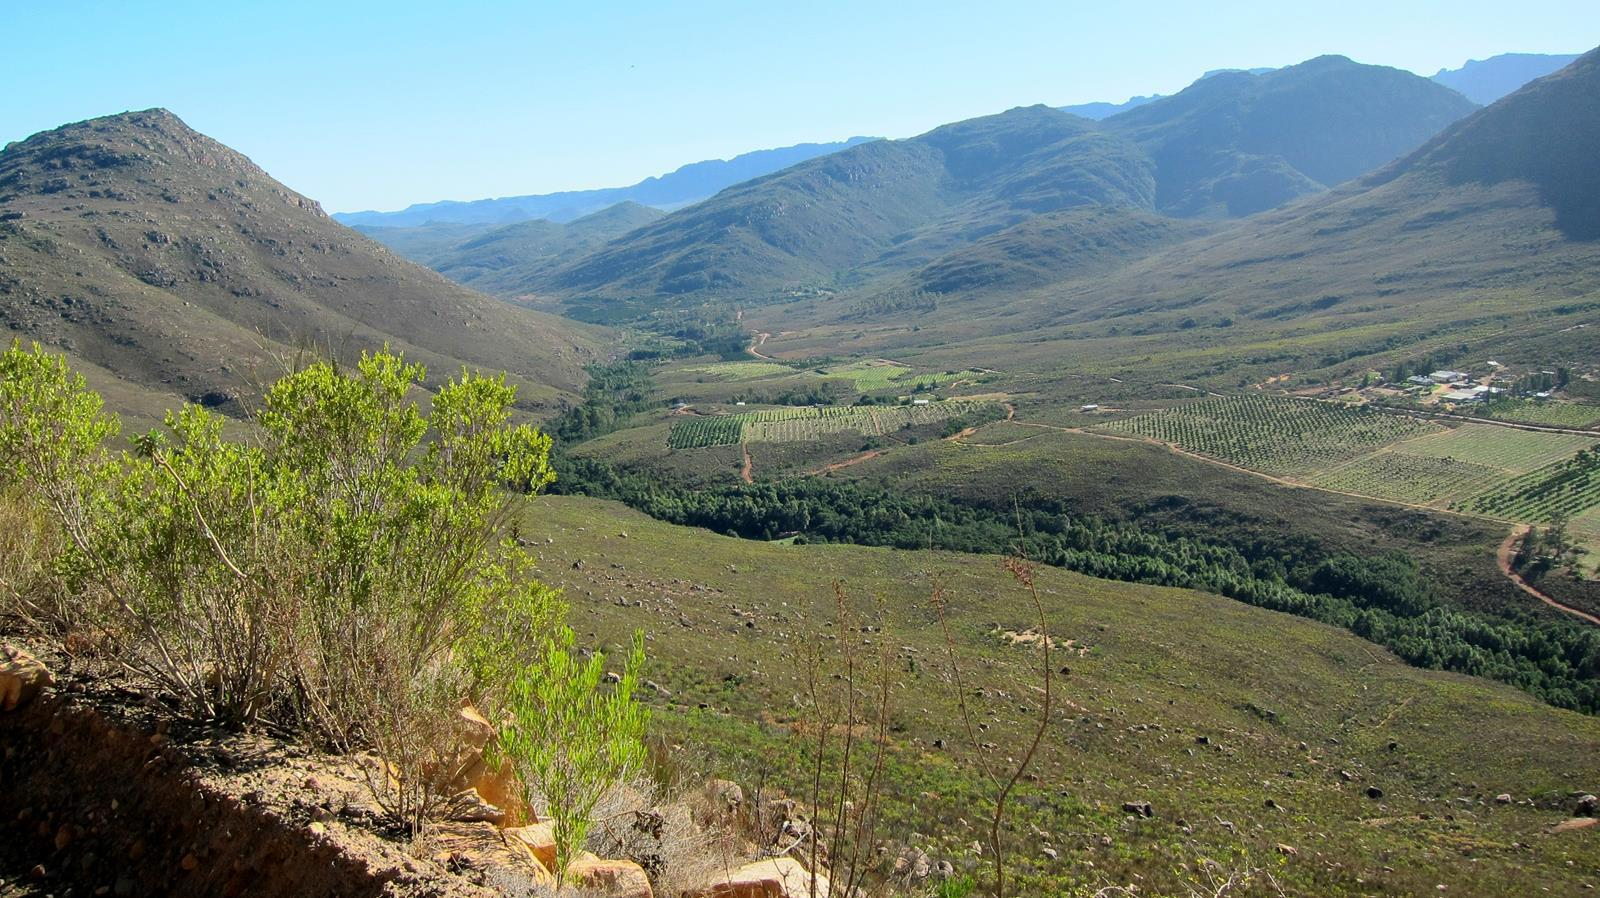 Some Cederberg vineyards.